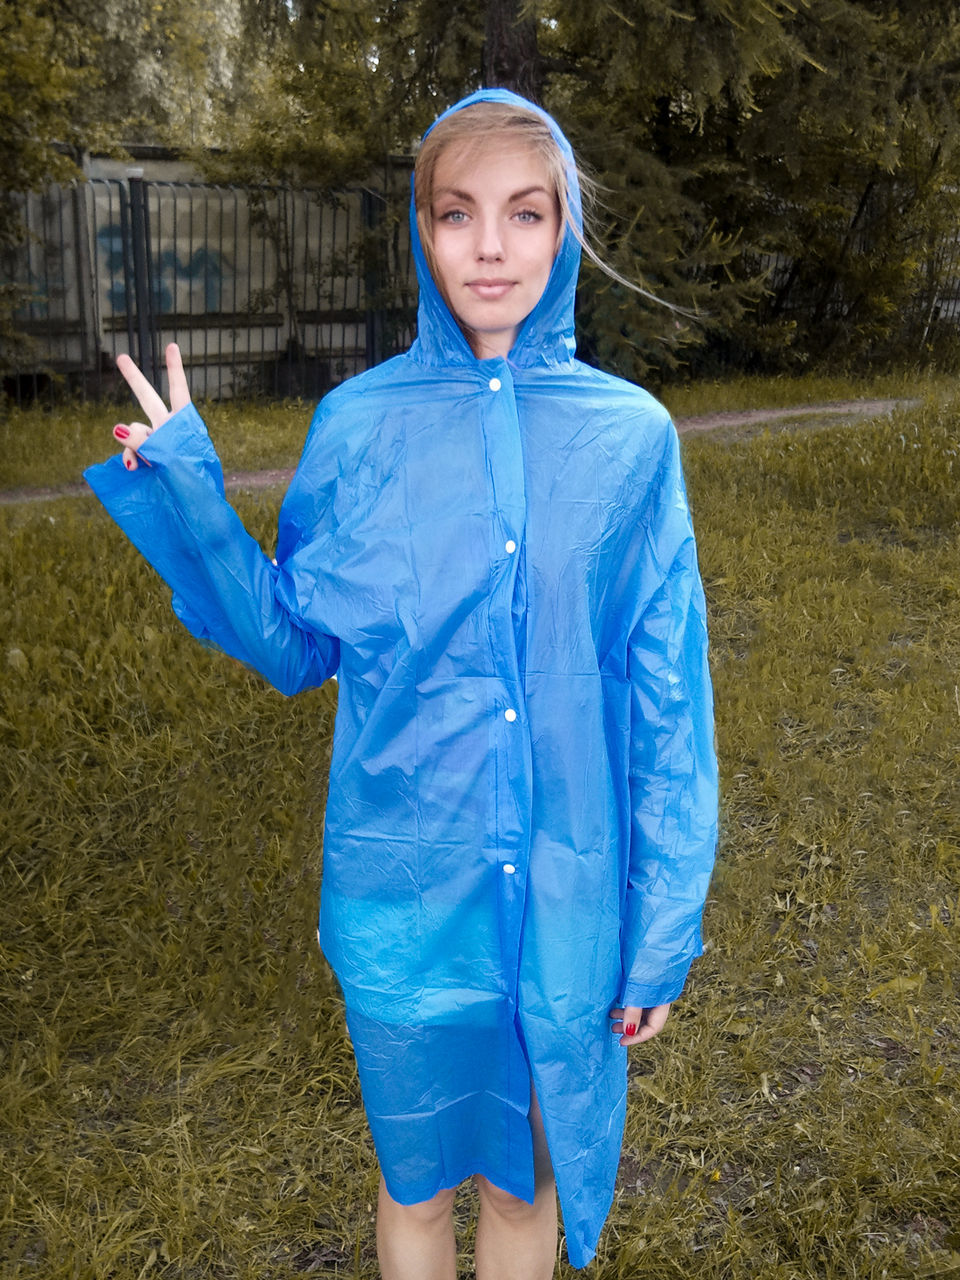 Portrait Of Woman Wearing Blue Raincoat Gesturing Peace Sign While Standing On Grassy Field At Yard